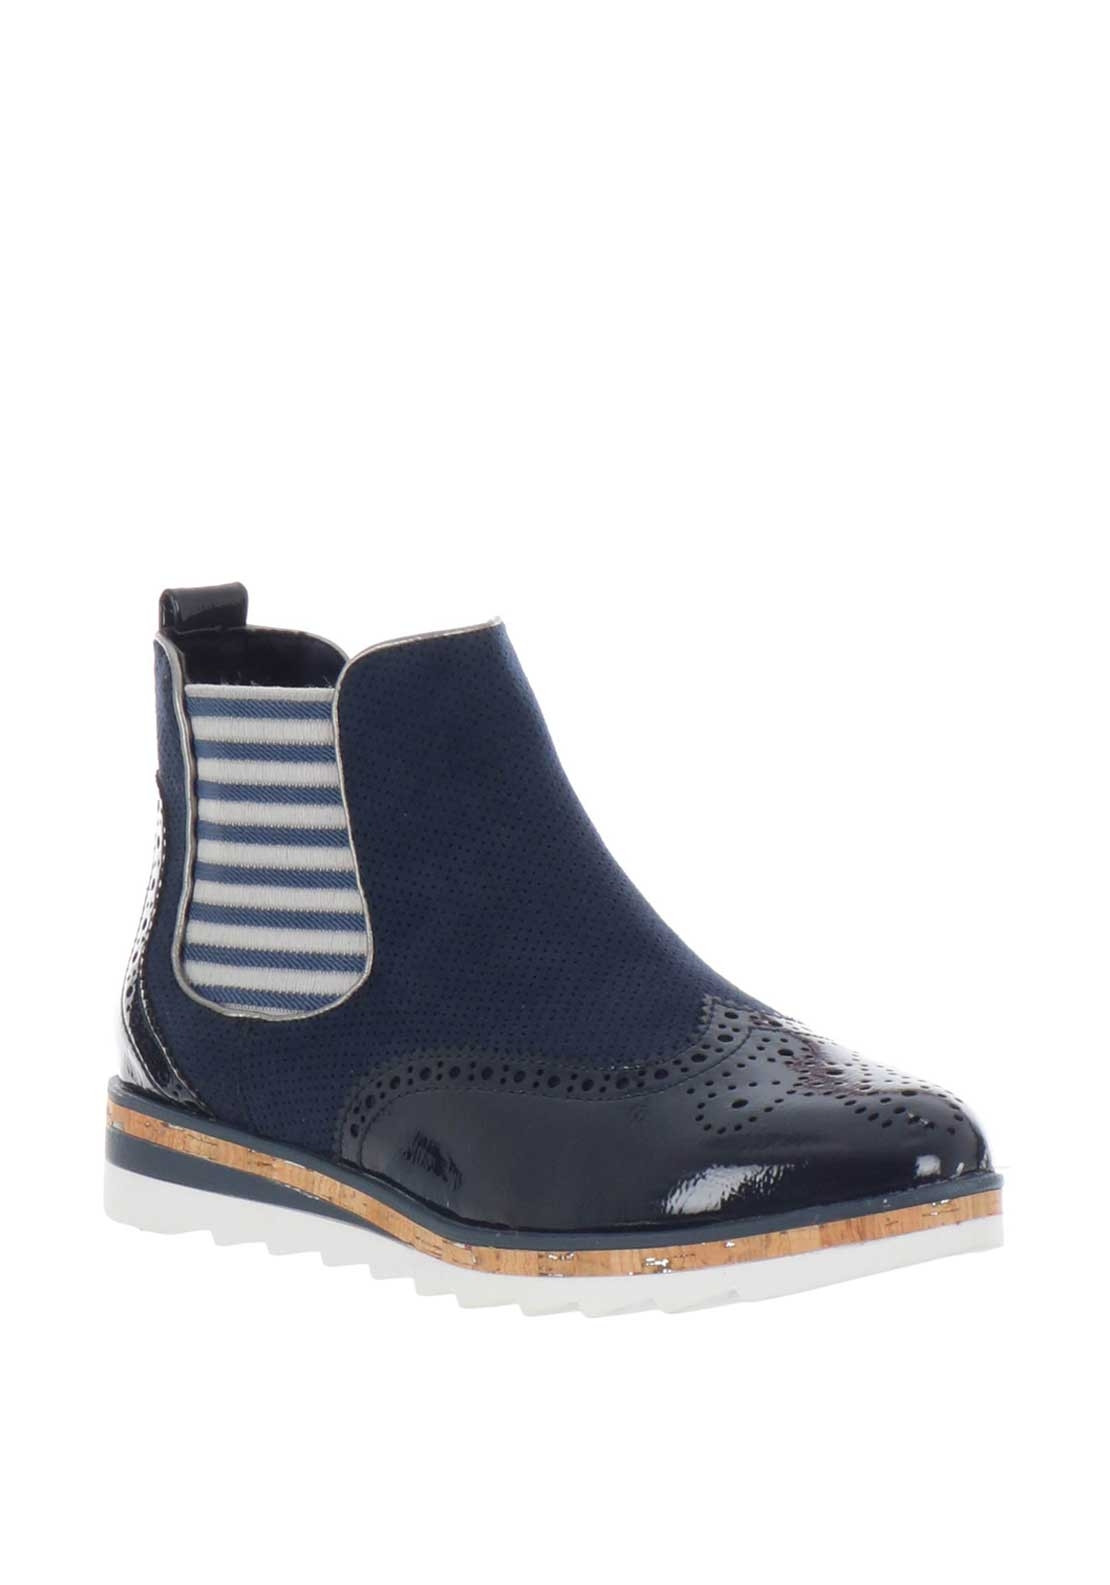 f21afb73c32 Marco tozzi patent chelsea boots navy be the first to review this product  jpg 1110x1585 Marco